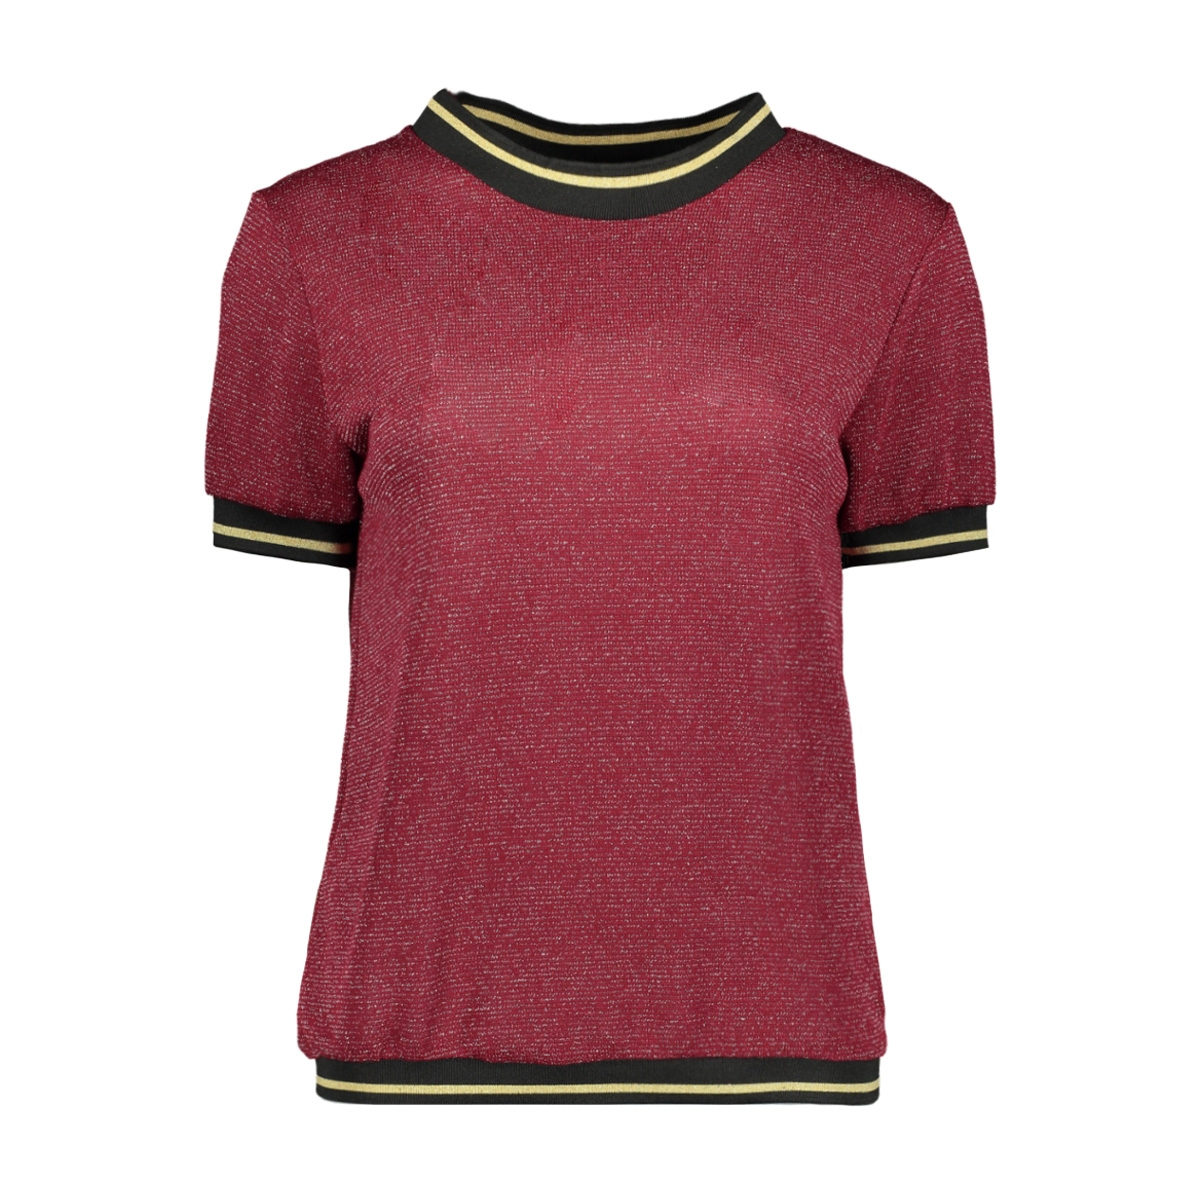 emilly glitter top luba t-shirt bordeaux